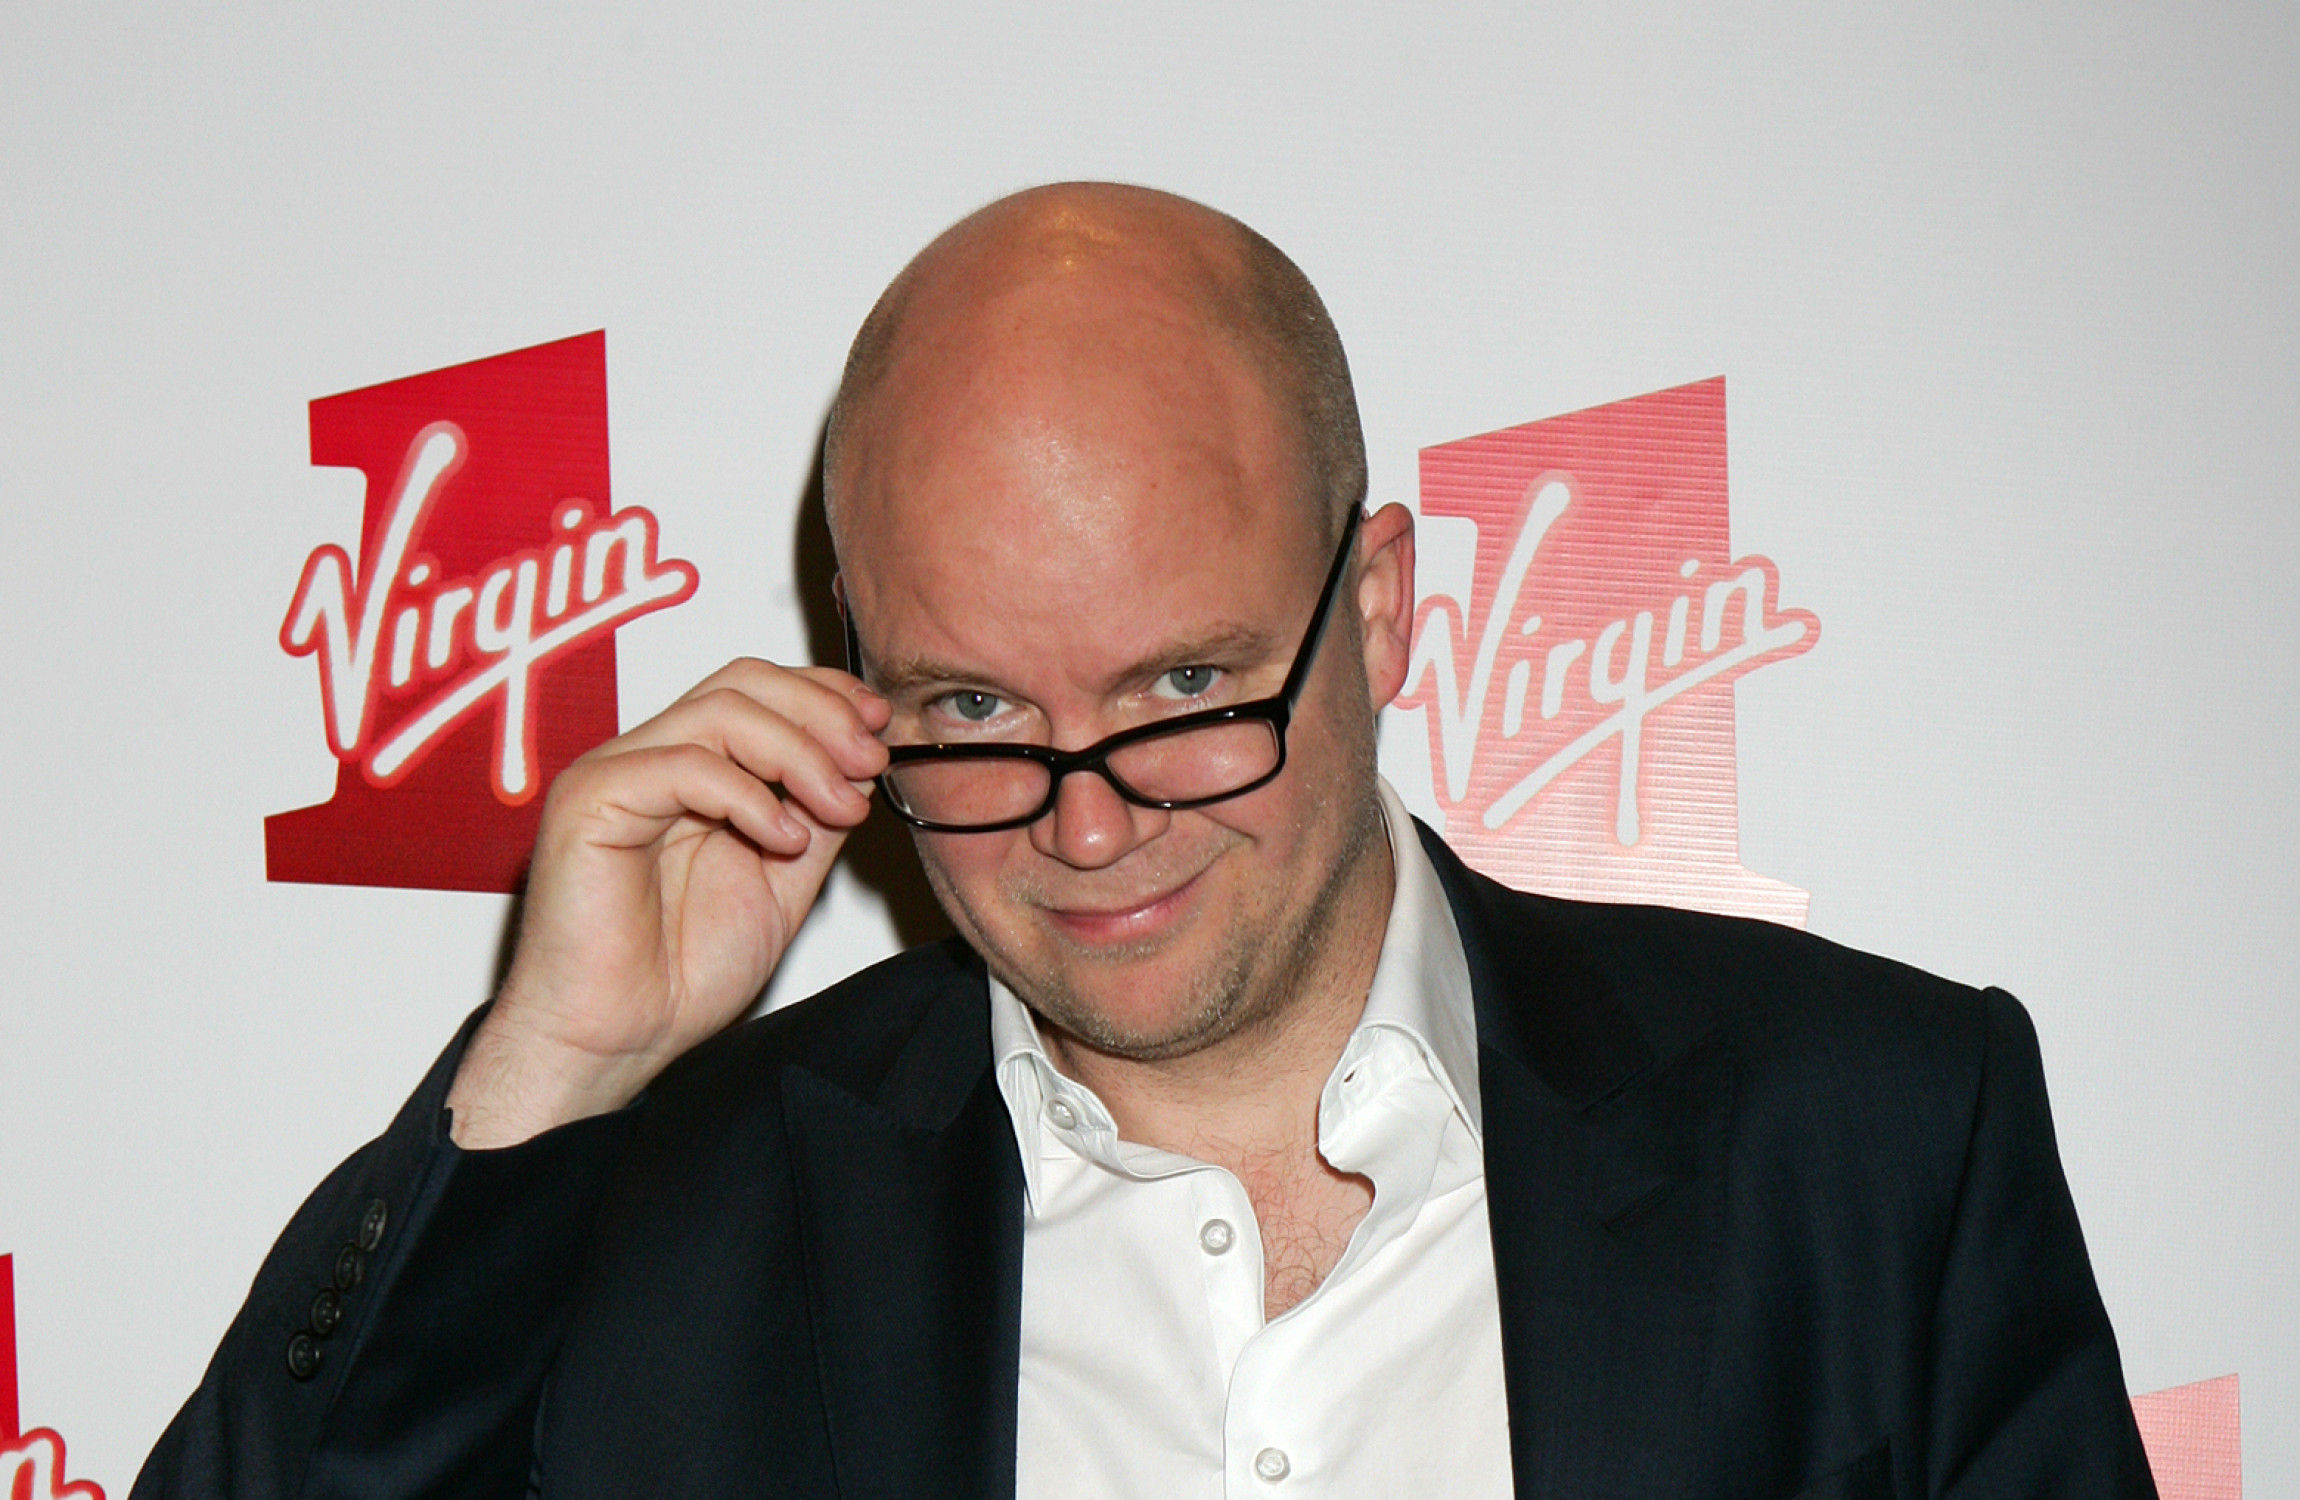 Toby Young stands down from Office for Students role after sexism controversy